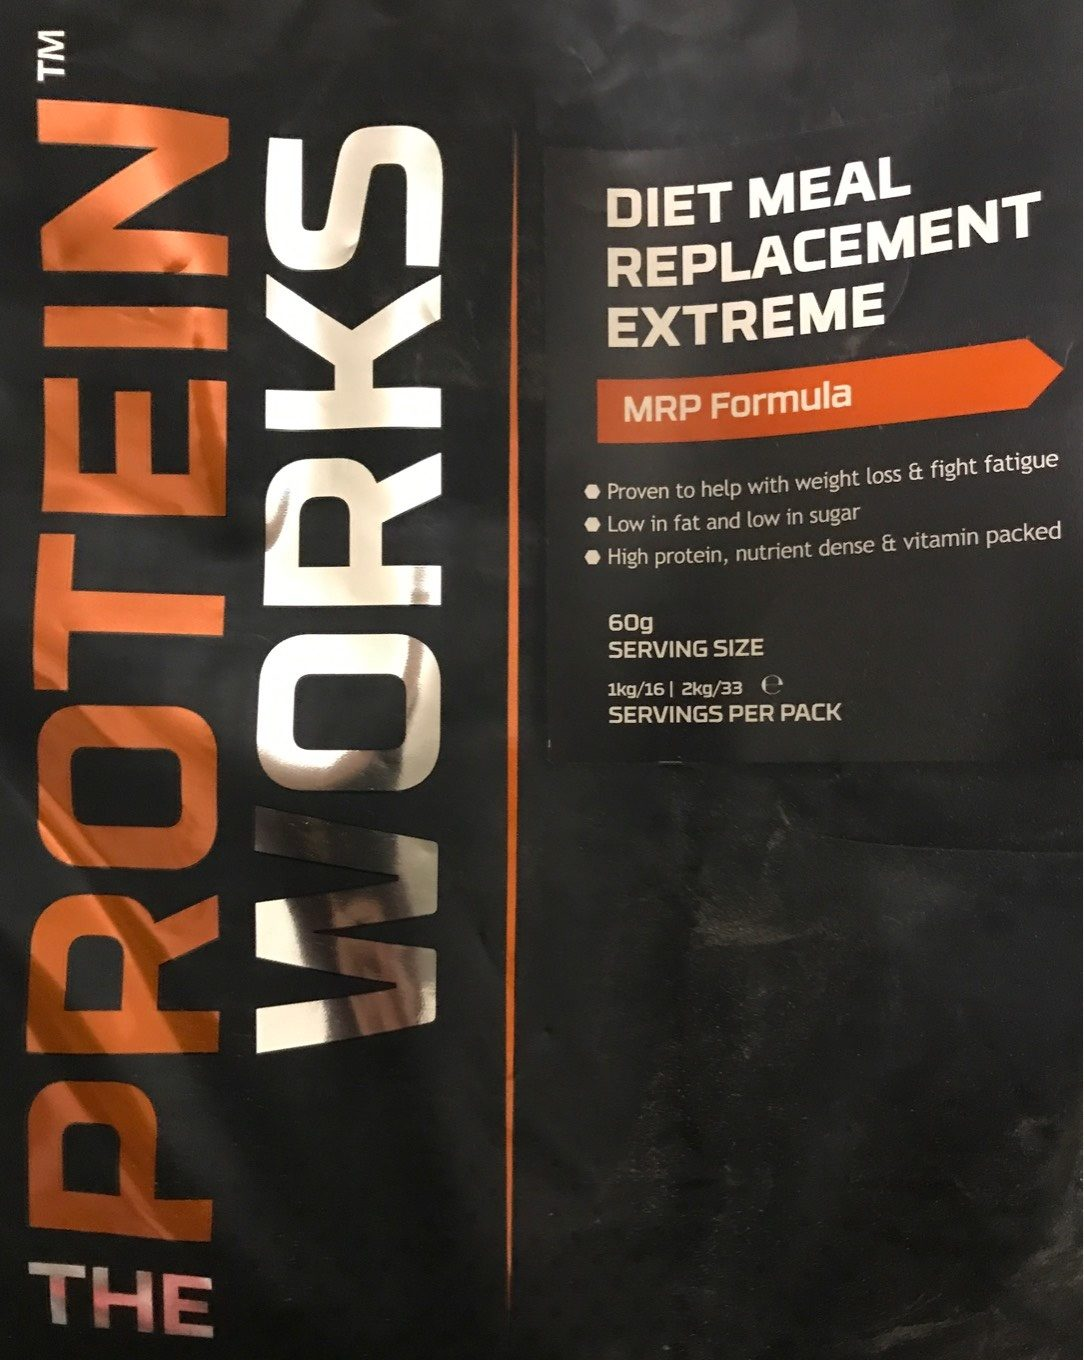 Diet Meal Replacement Extreme Chocolat Silk The Protein Works